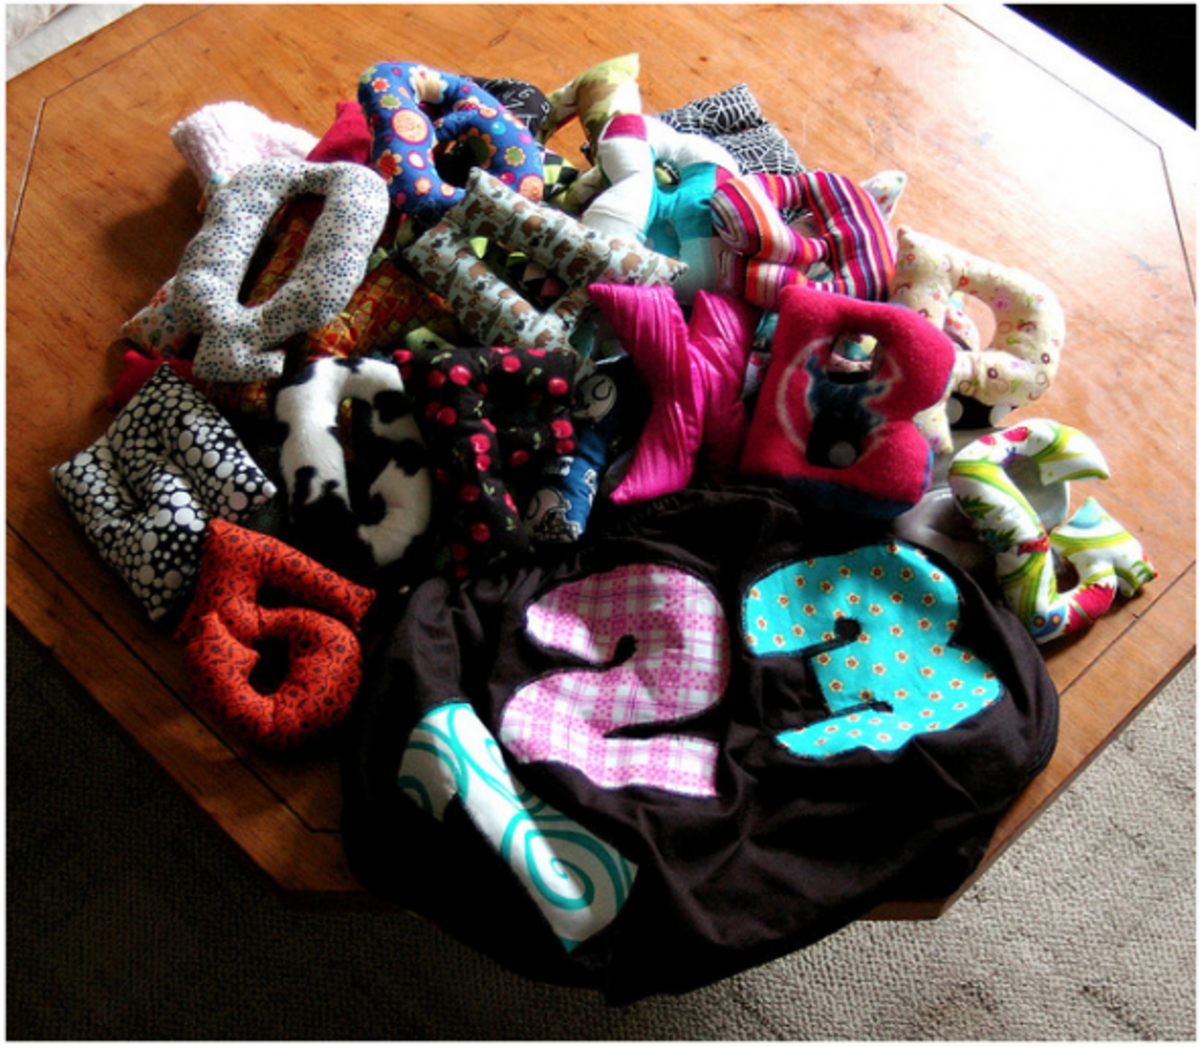 A complete set of sewn softie letters with a handmade drawstring bag. This would make a wonderful baby shower gift!